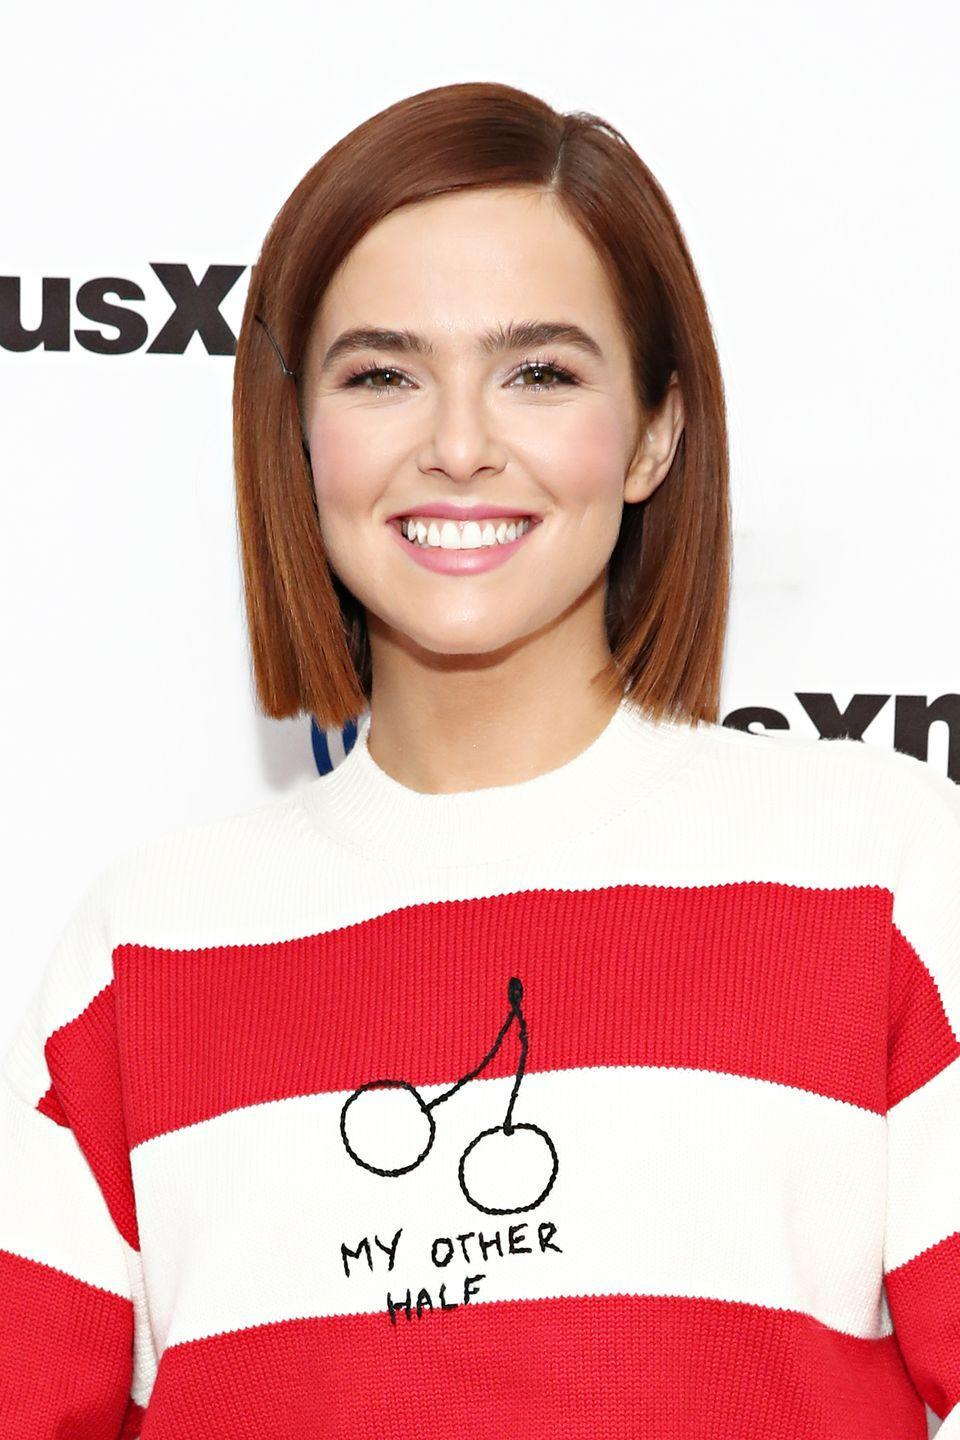 """<p>Falling somewhere between chestnut and true red,<strong> Zoey Deutch</strong>'s coppery auburn shade is a great way for brunettes of any complexion to change up their hair without straying too far from their natural shade. To achieve this look at home, try a few washes of <a href=""""https://overtone.co/products/ginger-coloring-conditioner"""" rel=""""nofollow noopener"""" target=""""_blank"""" data-ylk=""""slk:Overtone's Ginger Coloring Conditioner"""" class=""""link rapid-noclick-resp"""">Overtone's Ginger Coloring Conditioner </a>on hair that is not already color-treated.</p>"""